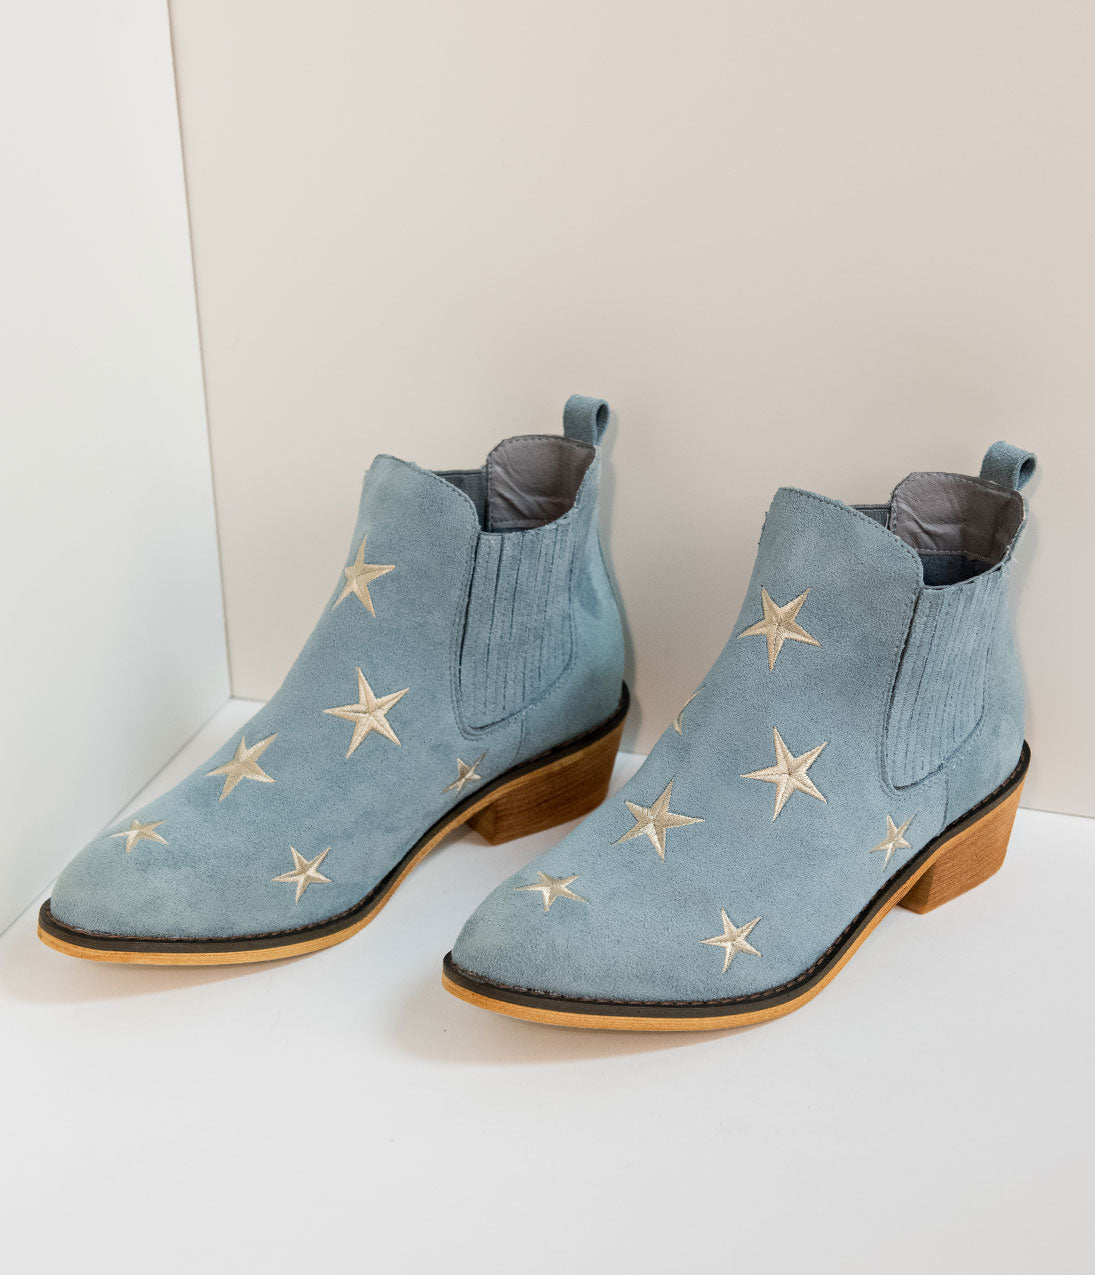 Retro Boots, Granny Boots, 70s Boots Light Blue Suede  Silver Embroidered Stars Ankle Booties $48.00 AT vintagedancer.com